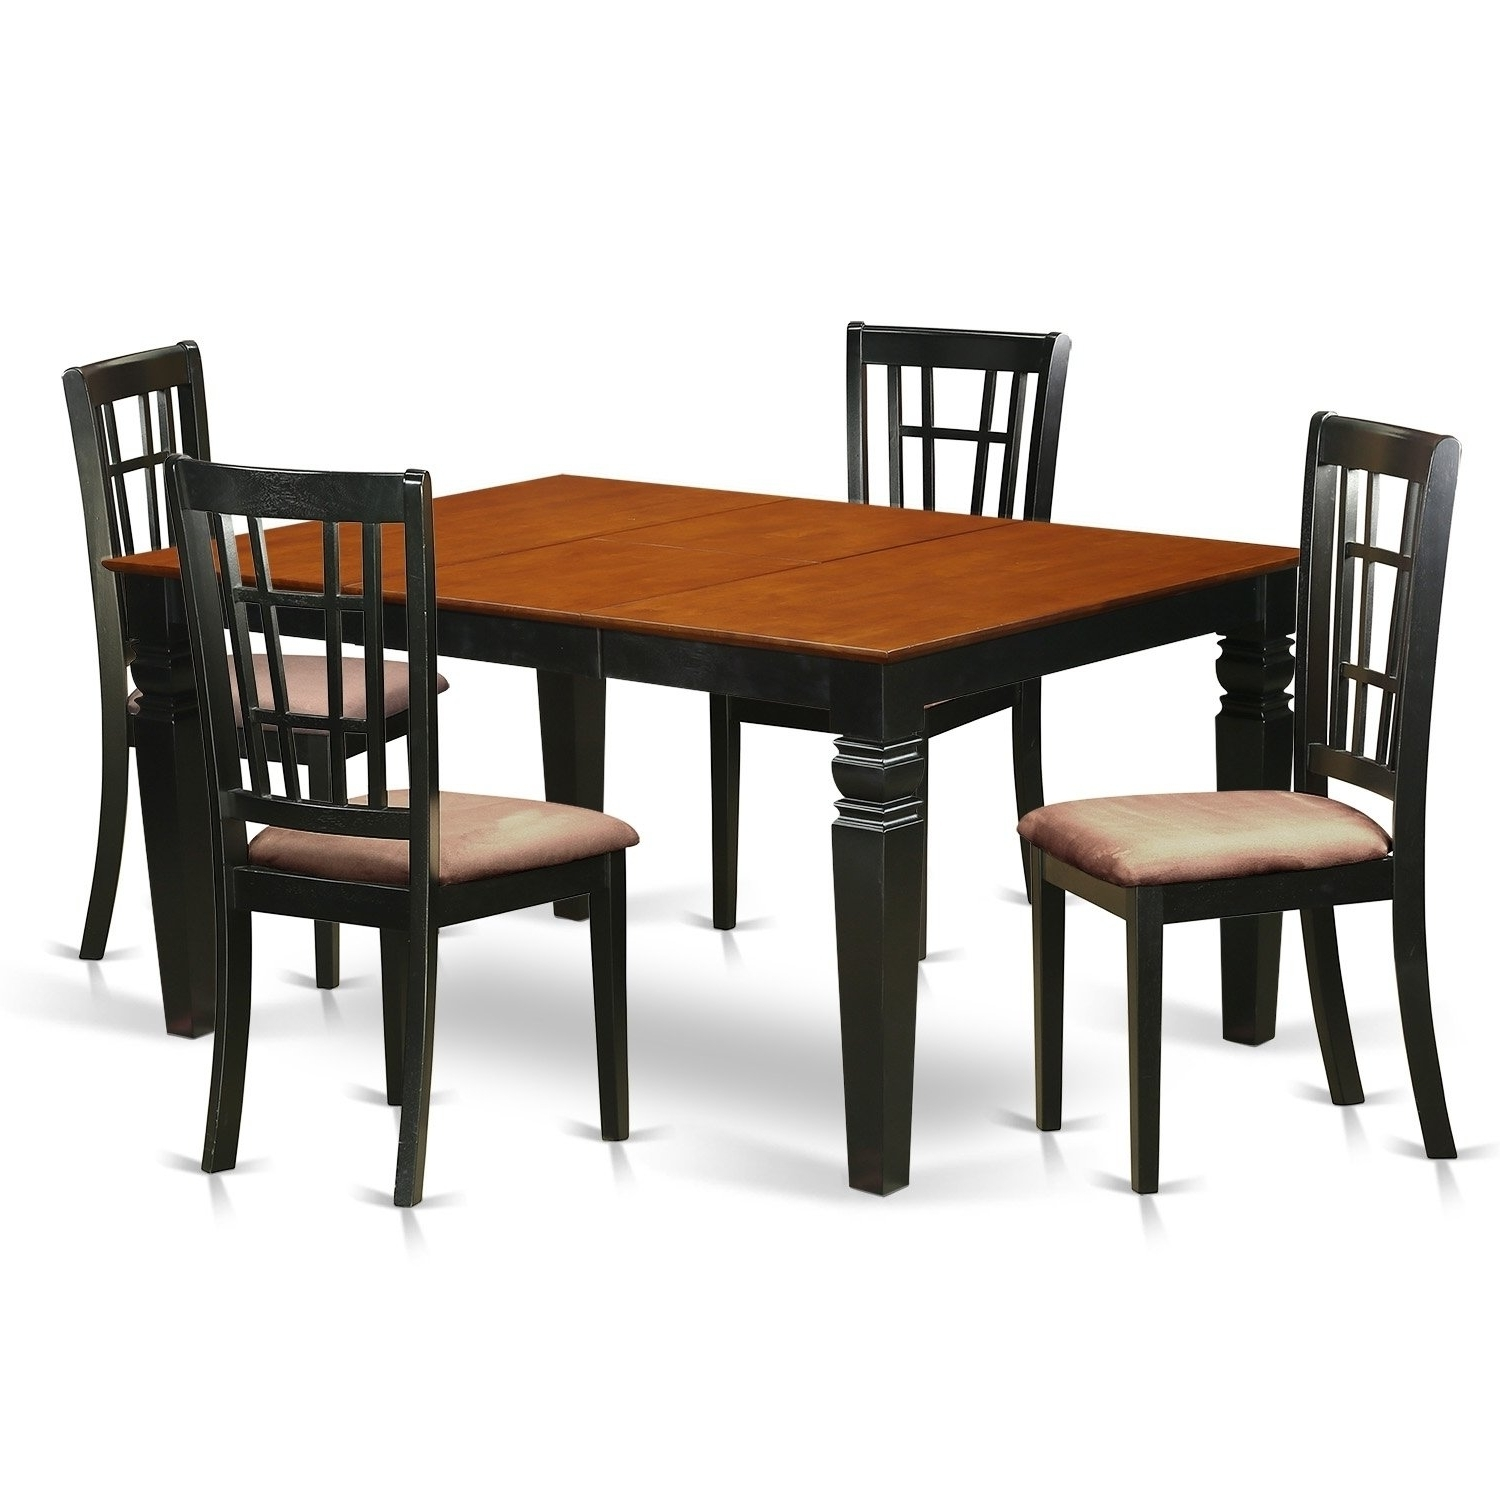 Fashionable Caden 5 Piece Round Dining Sets With Upholstered Side Chairs Throughout Weni5 Bch 5 Pc Dinette Set With A Dining Table And 4 Kitchen Chairs (View 11 of 25)